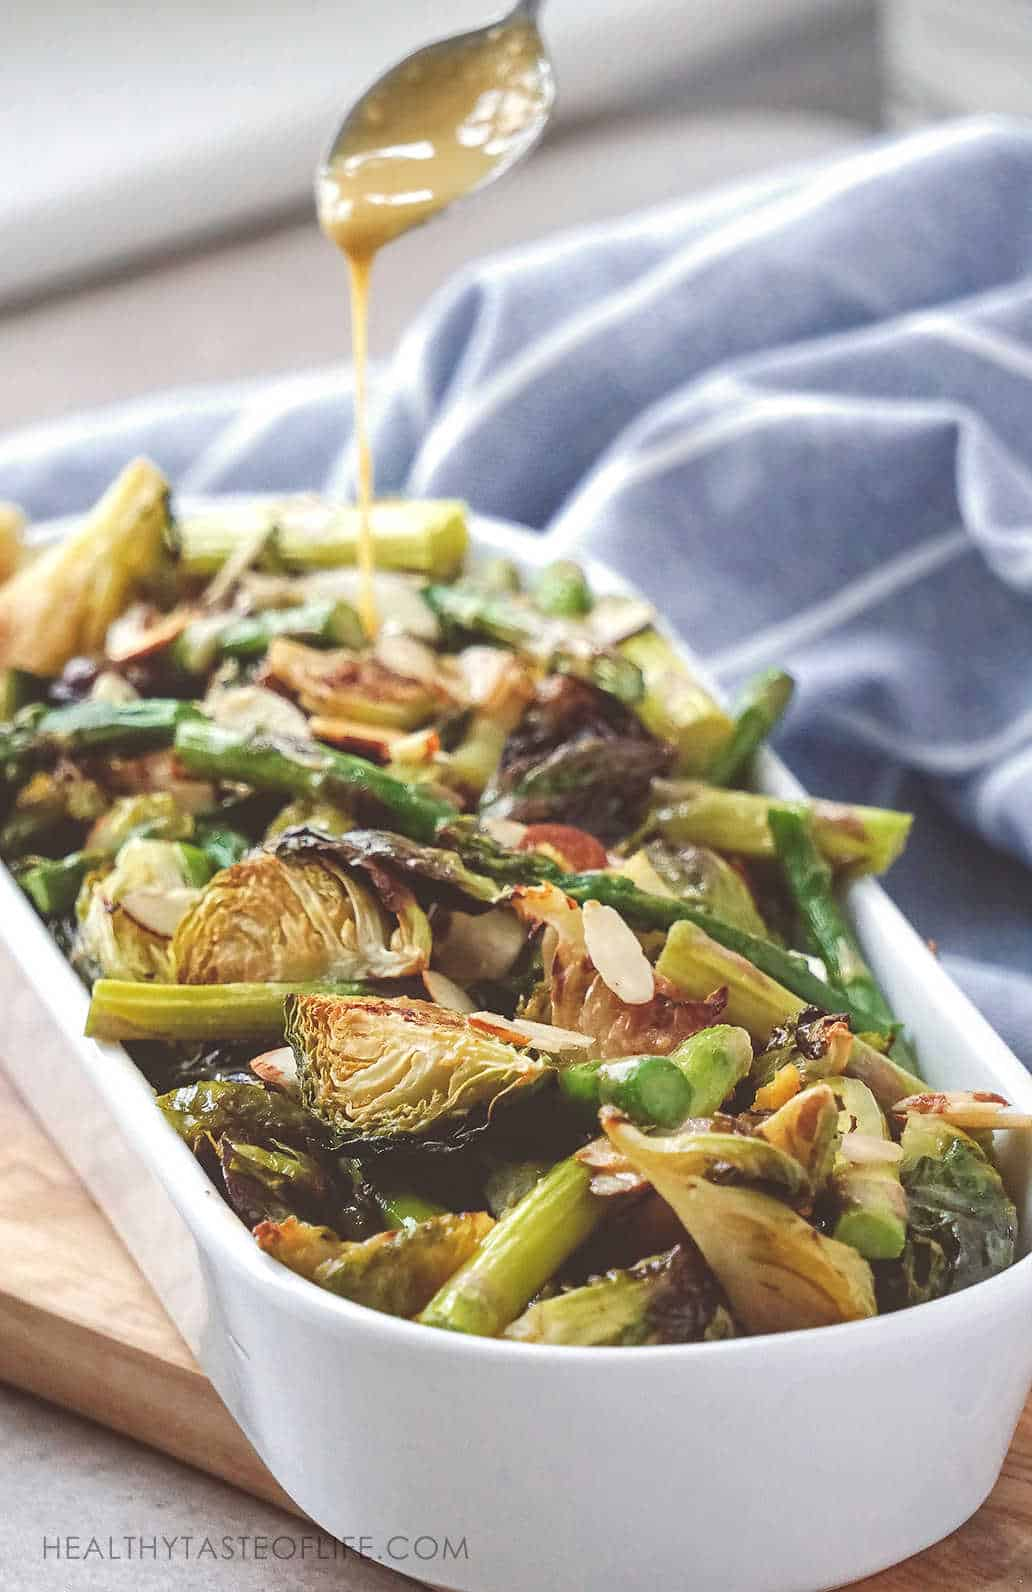 Keto Brussels Sprouts Recipe + Video. Oven roasted keto Brussels Sprouts and asparagus – easy , low carb recipe that yields brown crispy Brussels sprouts and just the right tenderness without using a ton of herbs, spices or mask their flavor with bacon. A light flavorful keto and low carb side dish without dairy! #keto #lowcarb #brusselssprouts #dairyfree